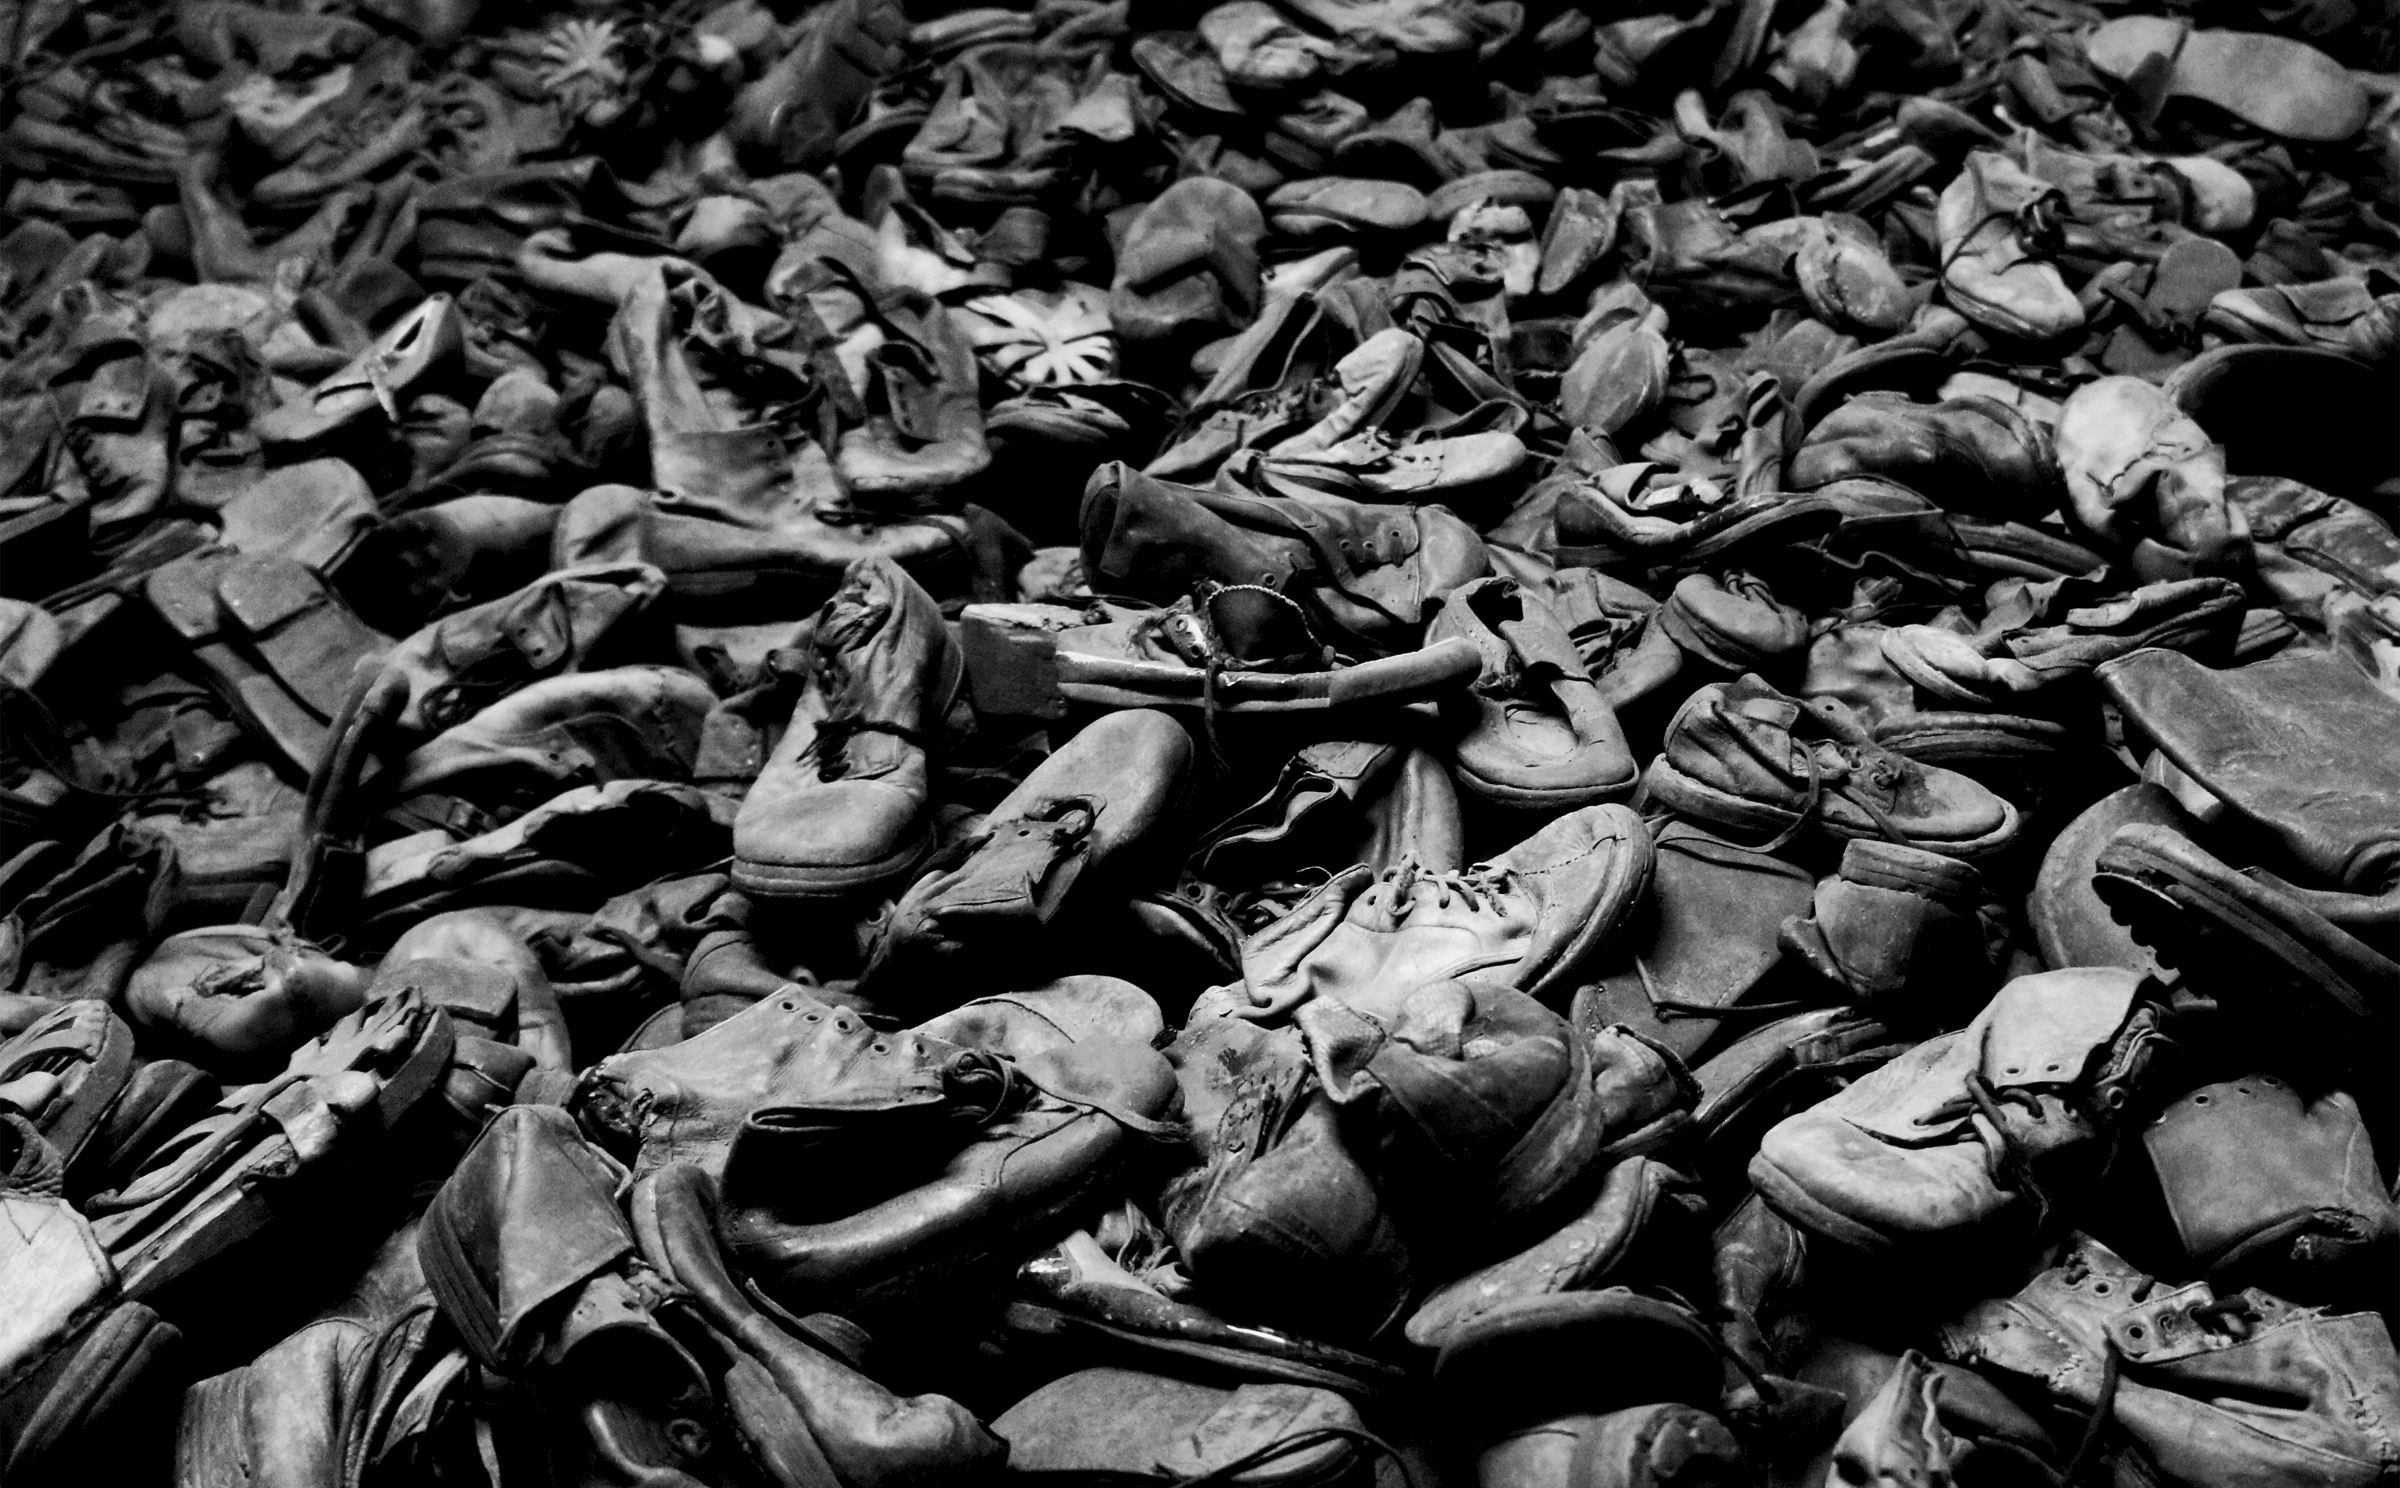 huge pile of old leather shoes